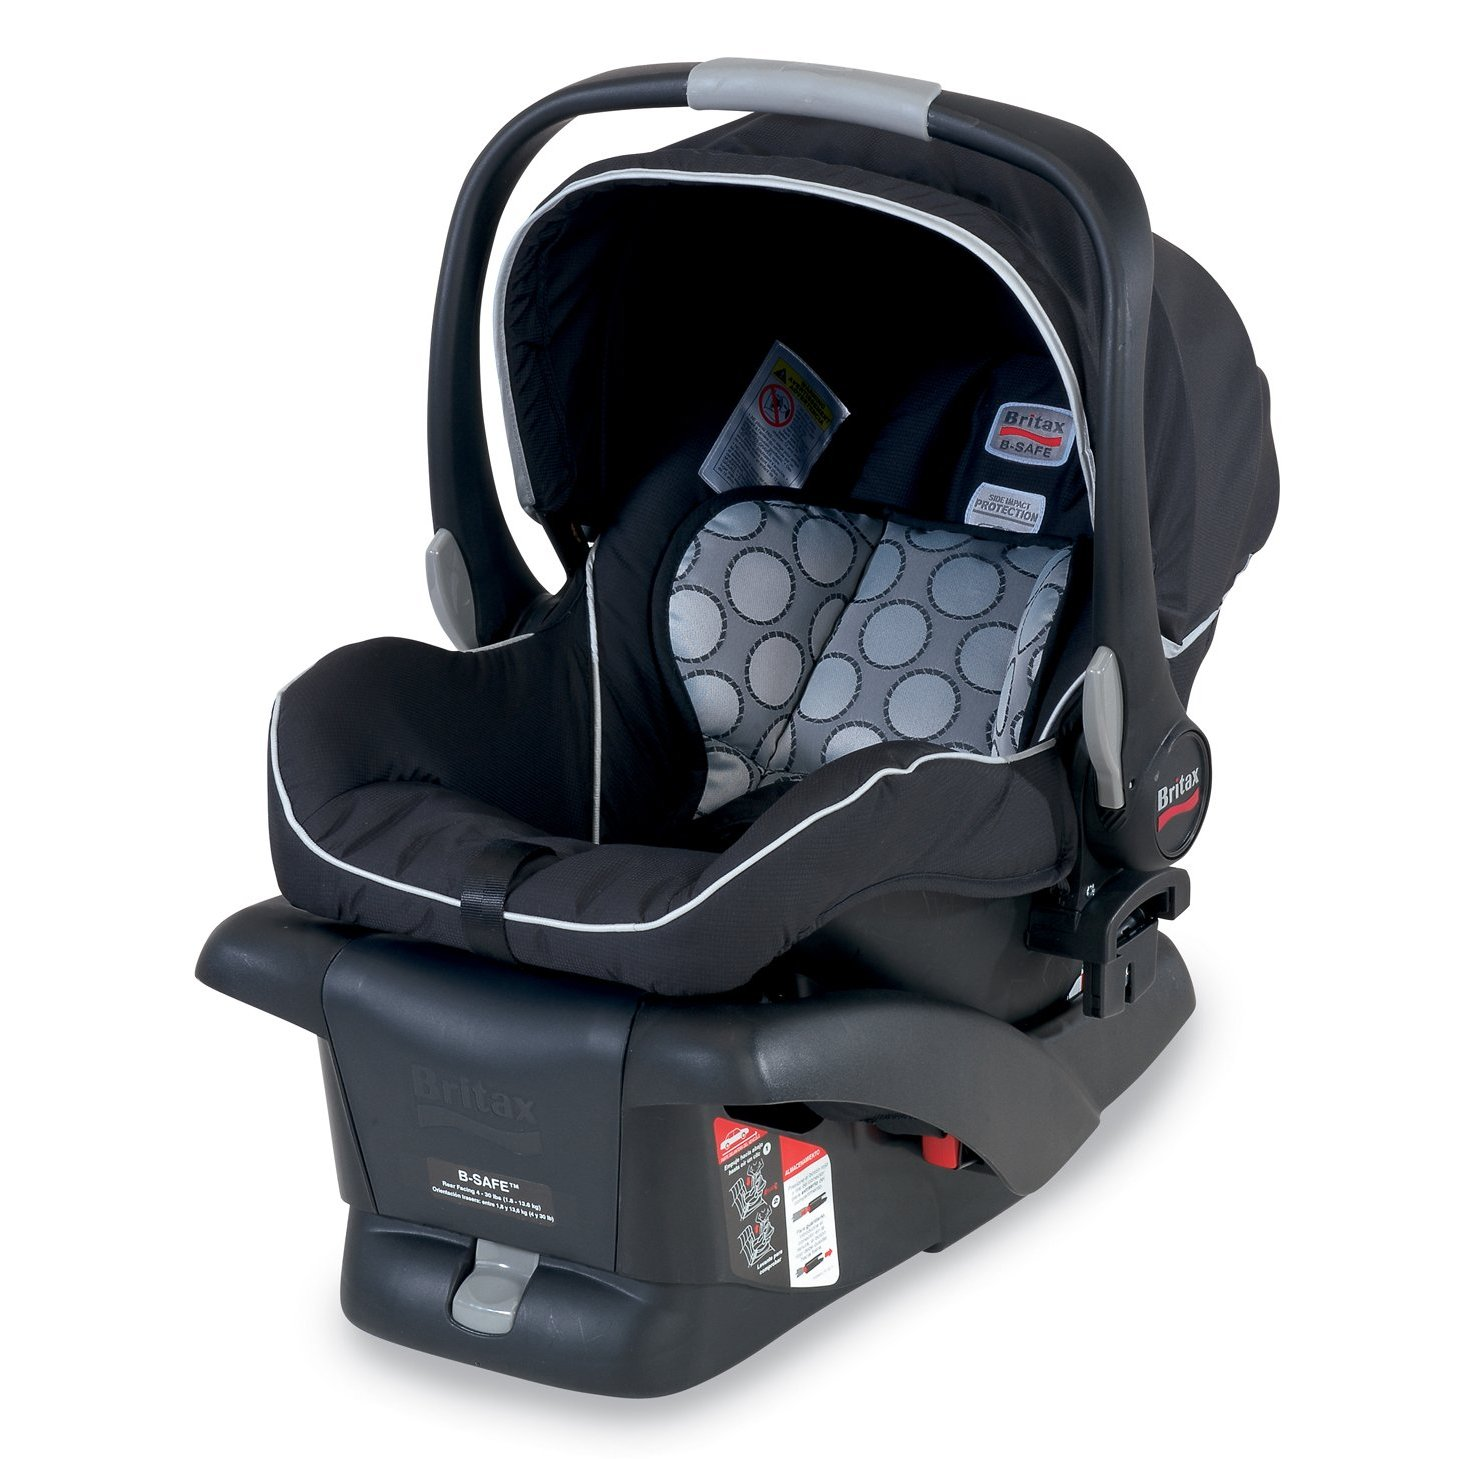 Safe Infant Car Seat For Baby Gift Idea